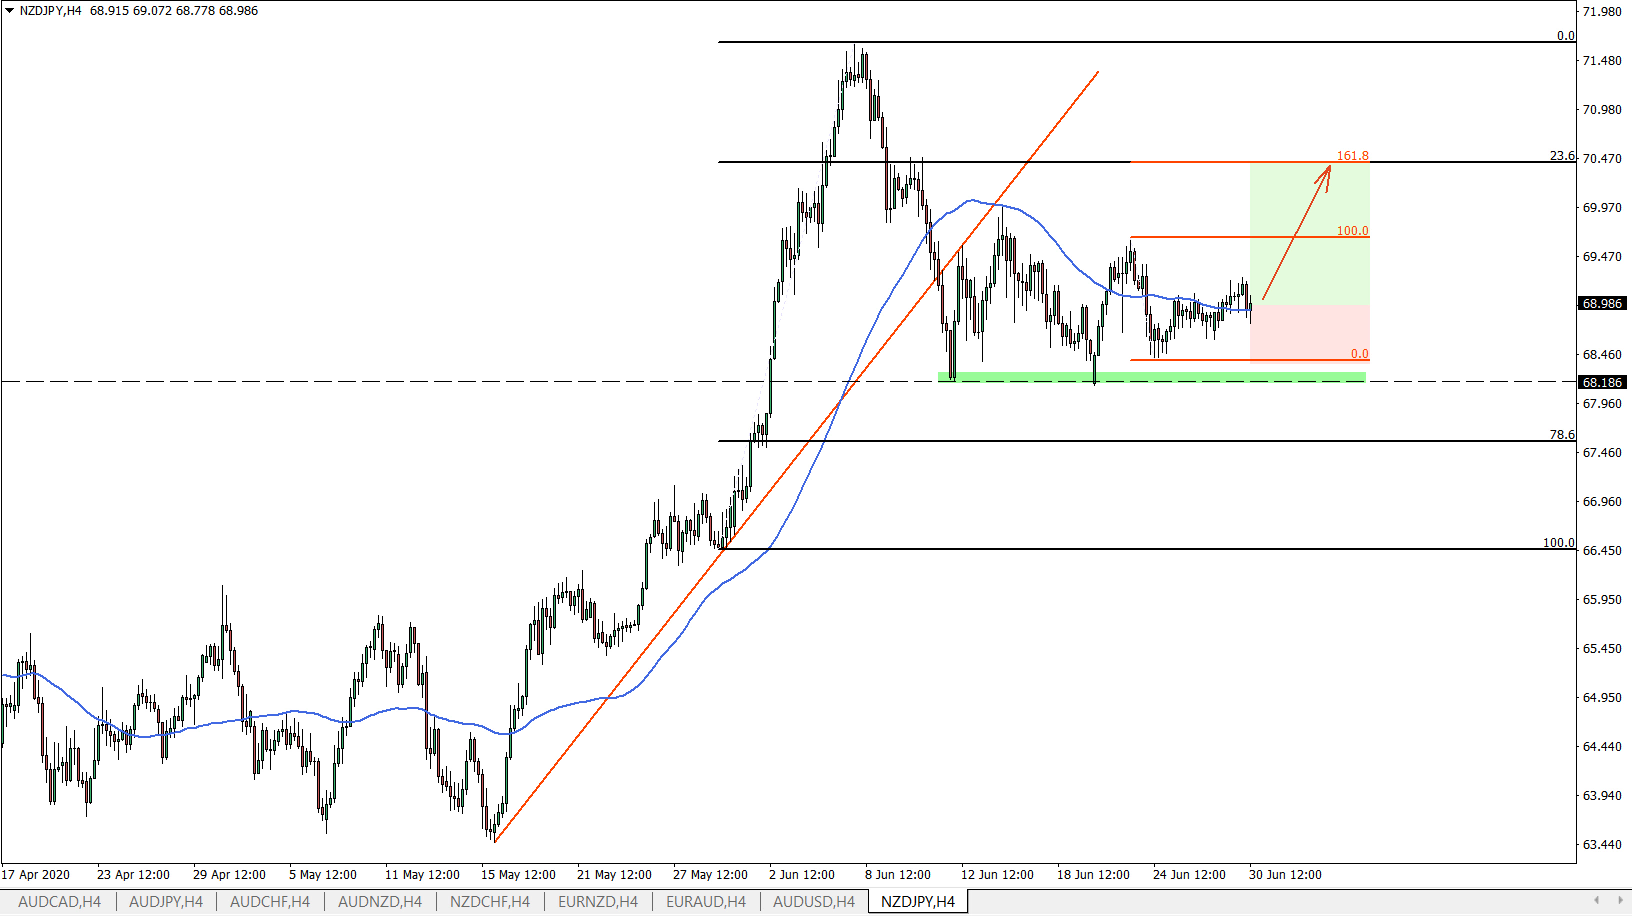 NZDJPY 4hour chart June 30th 2020